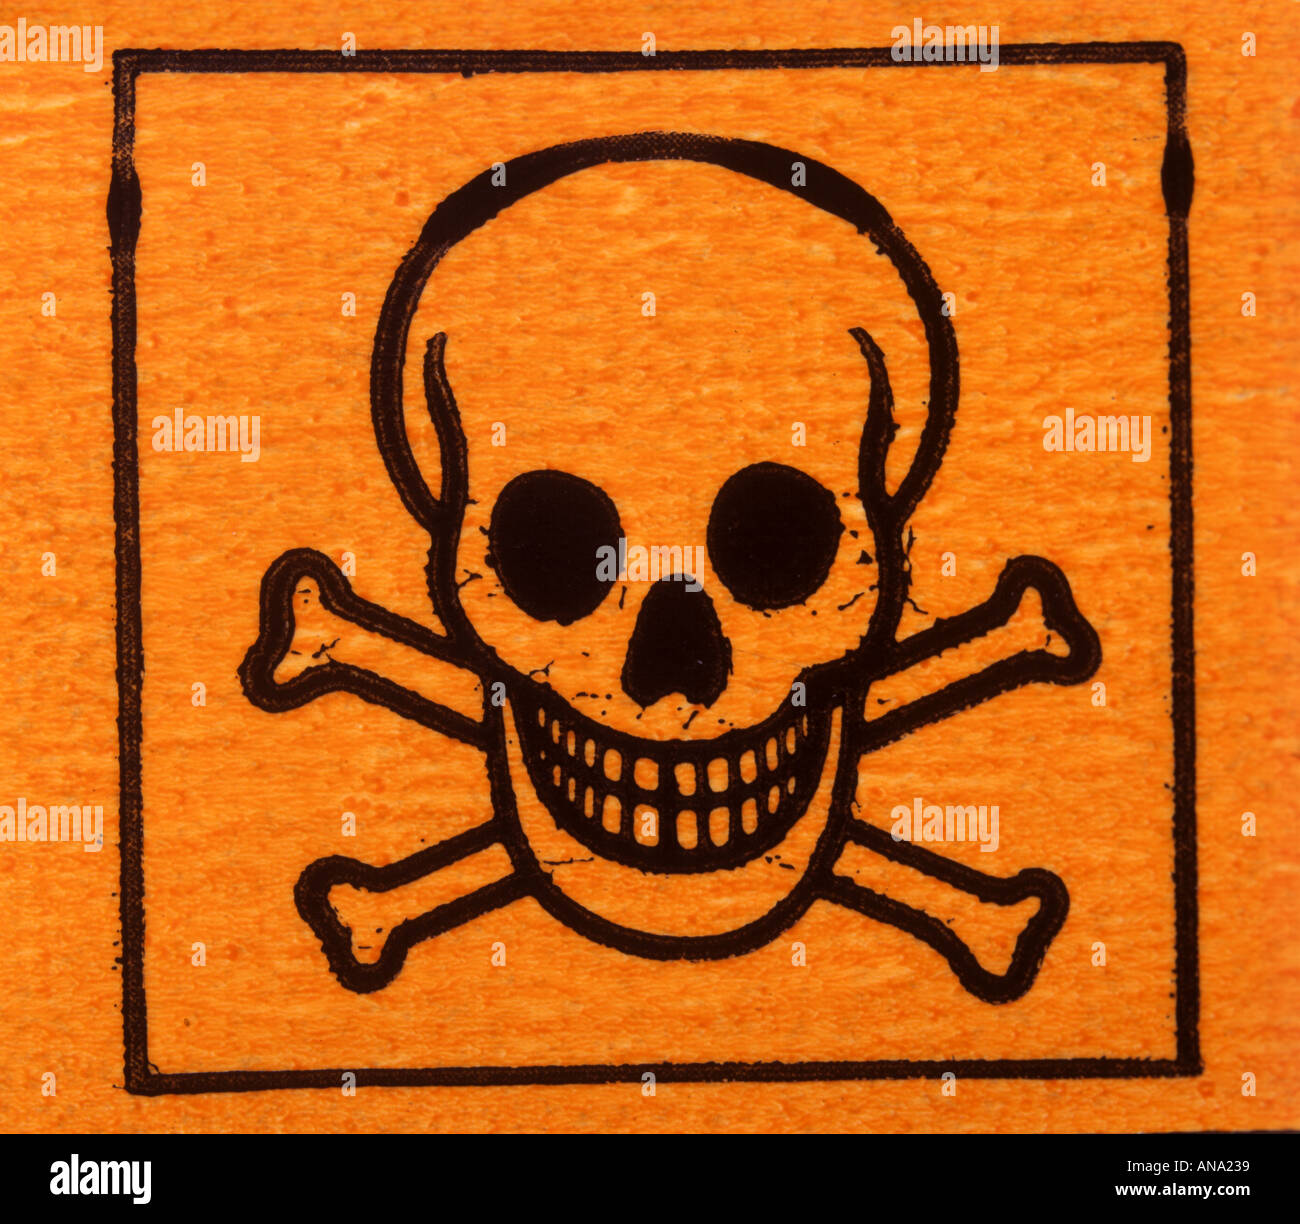 hazard symbol for toxic substance hazchem - Stock Image